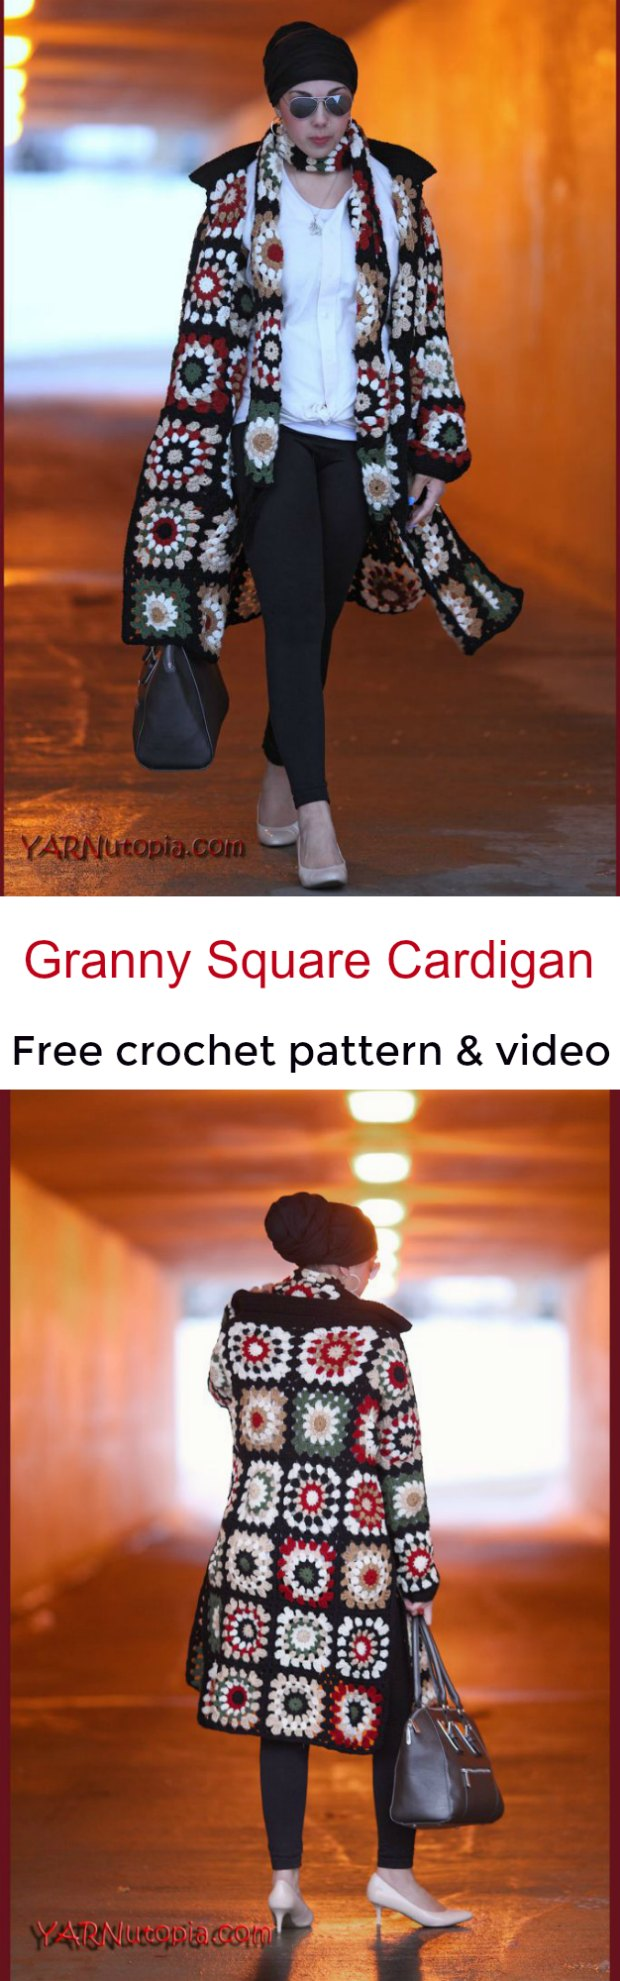 Crochet Long Cardigan Granny Square Pattern Video